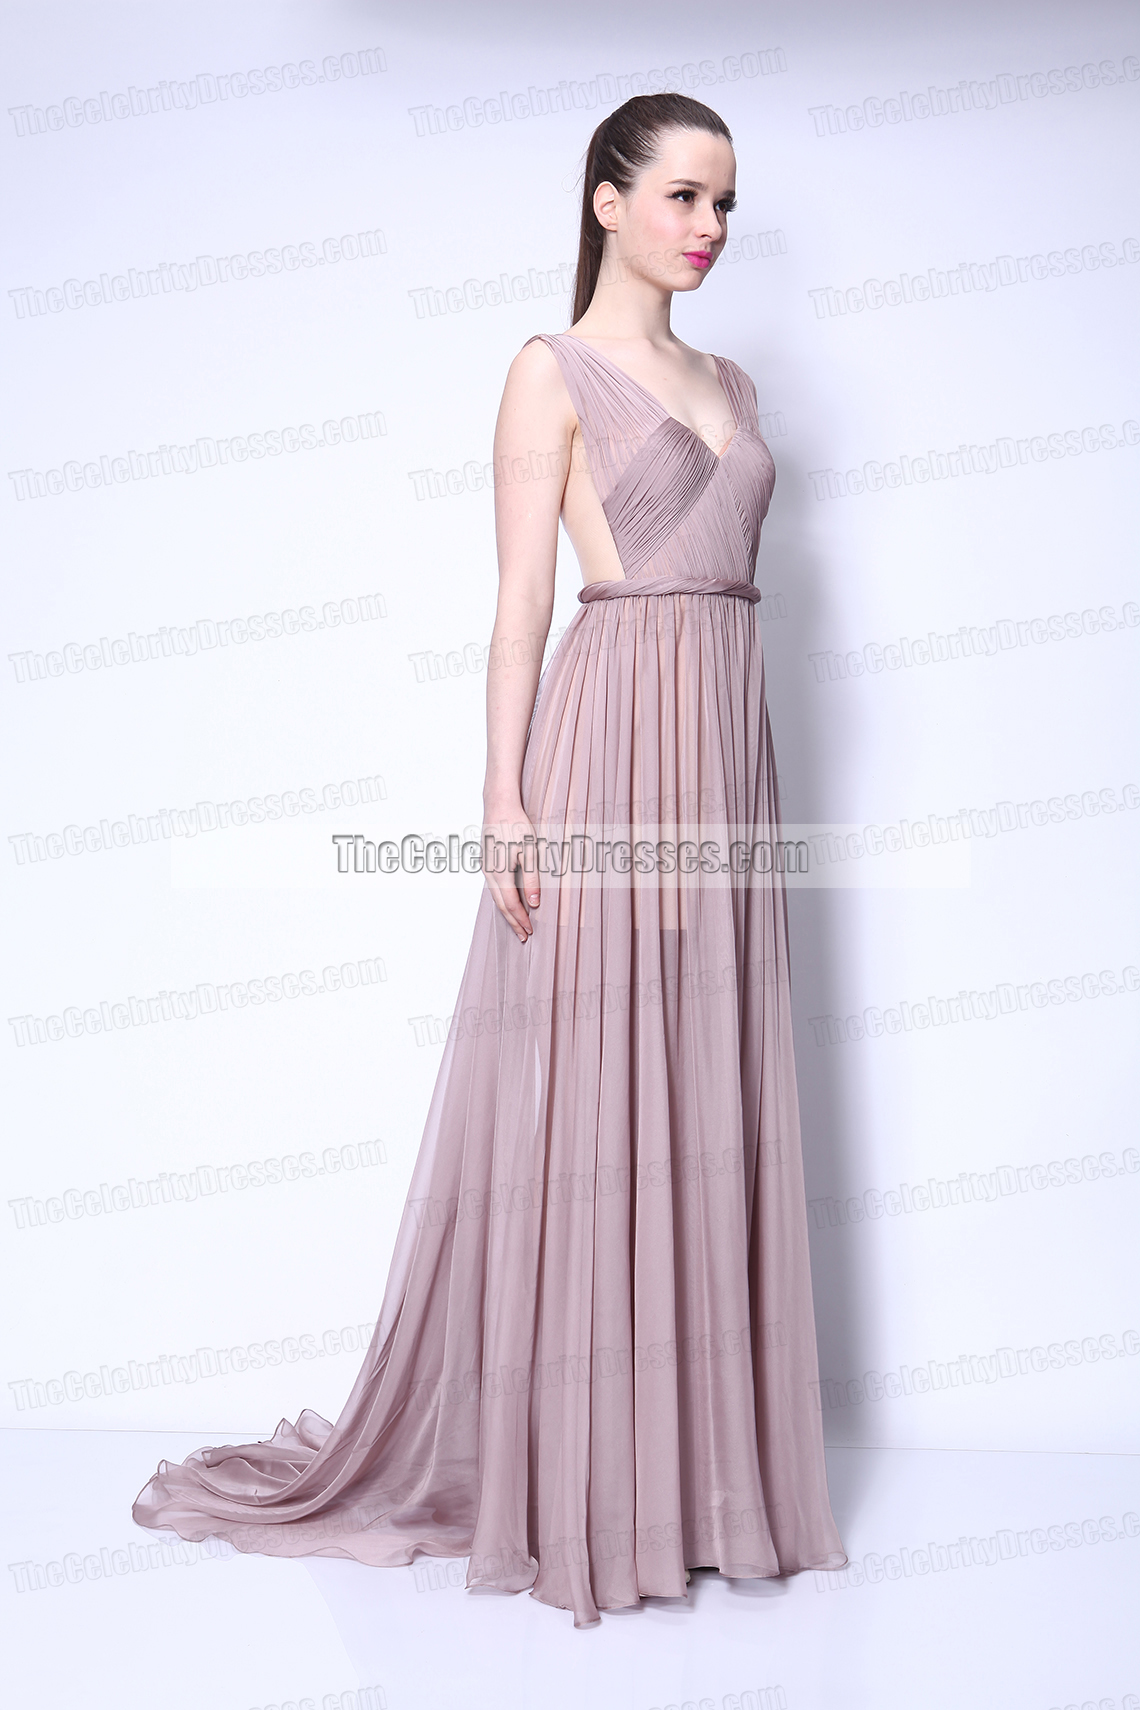 Taylor Swift Chiffon Prom Dress in Video Begin Again gorgeous Gown ...